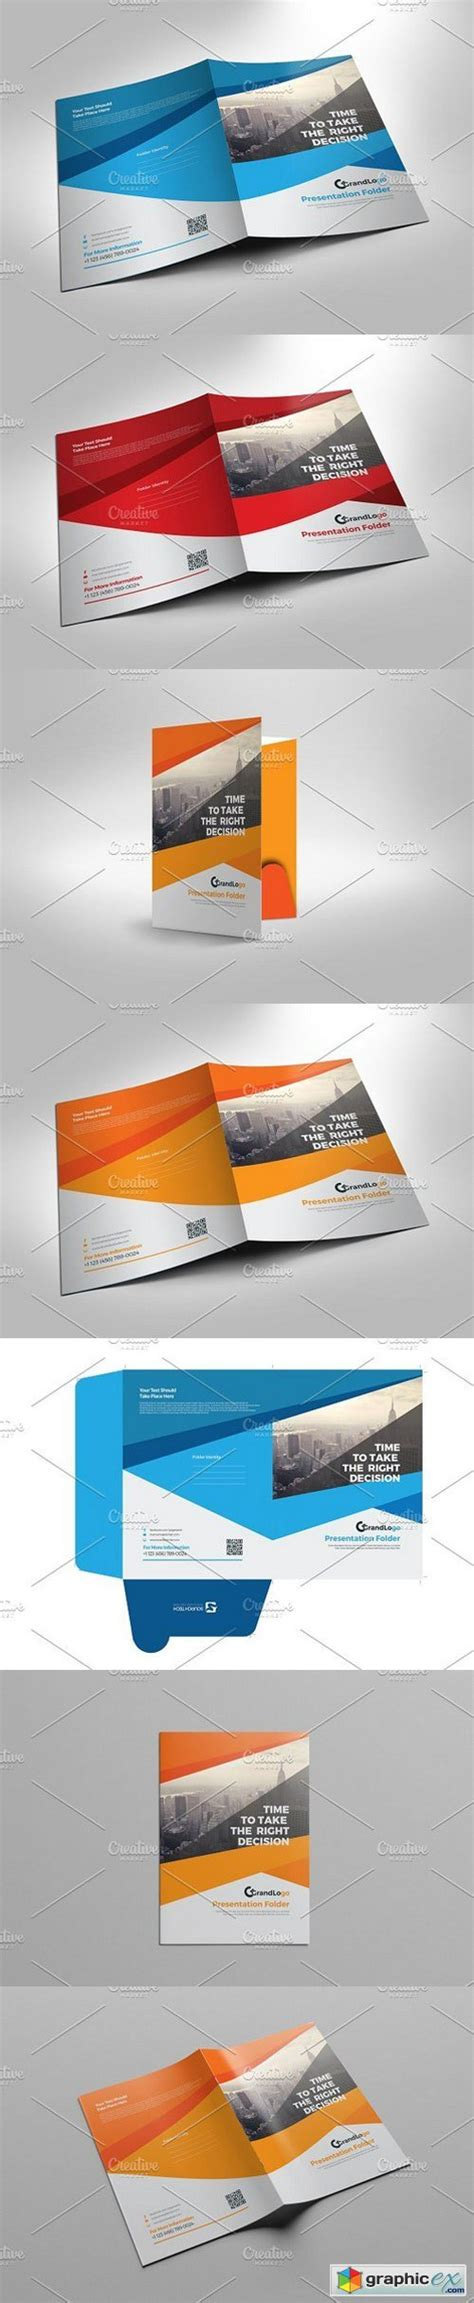 presentation folder template 187 free download vector stock